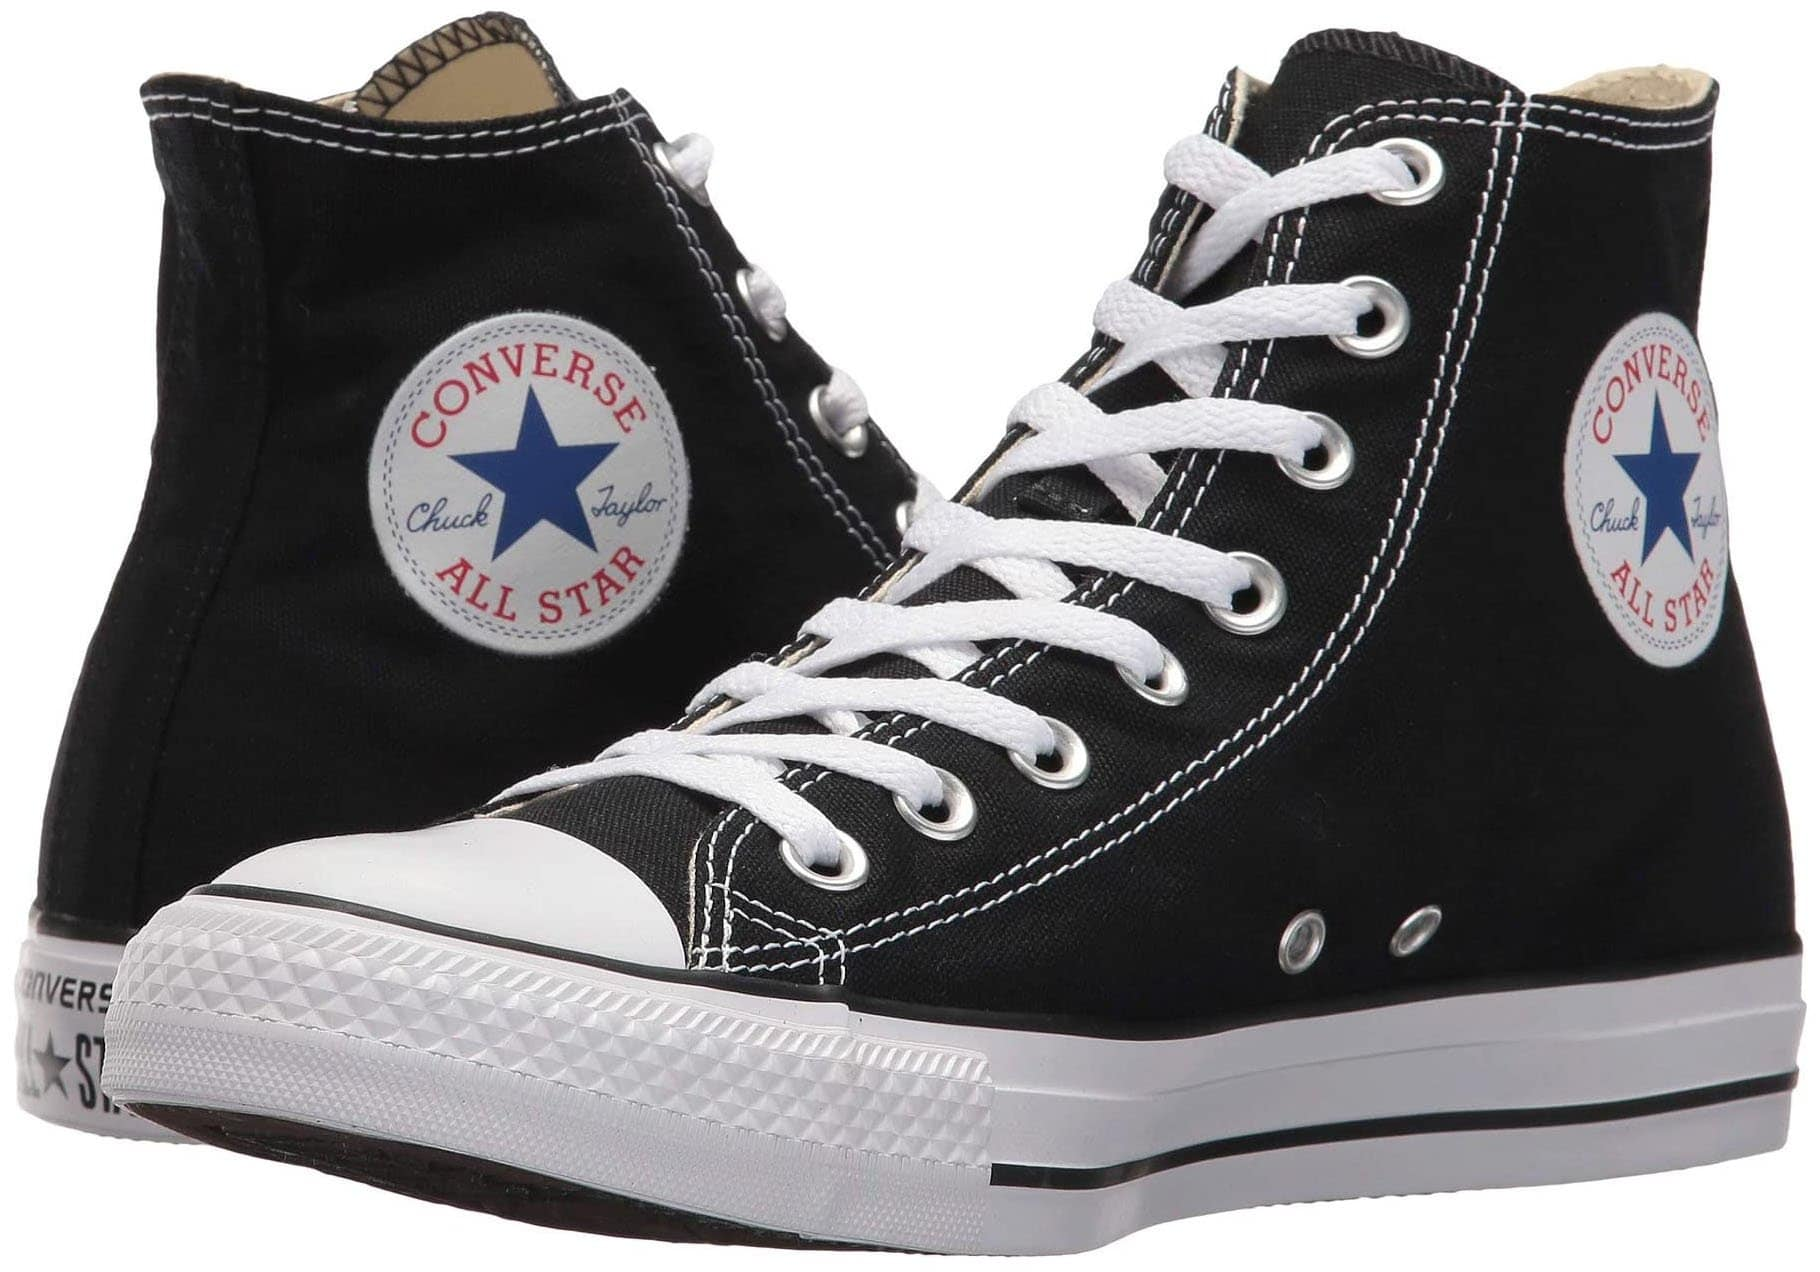 Black/white round toe Chuck Taylor All Star Lift Hi sneakers